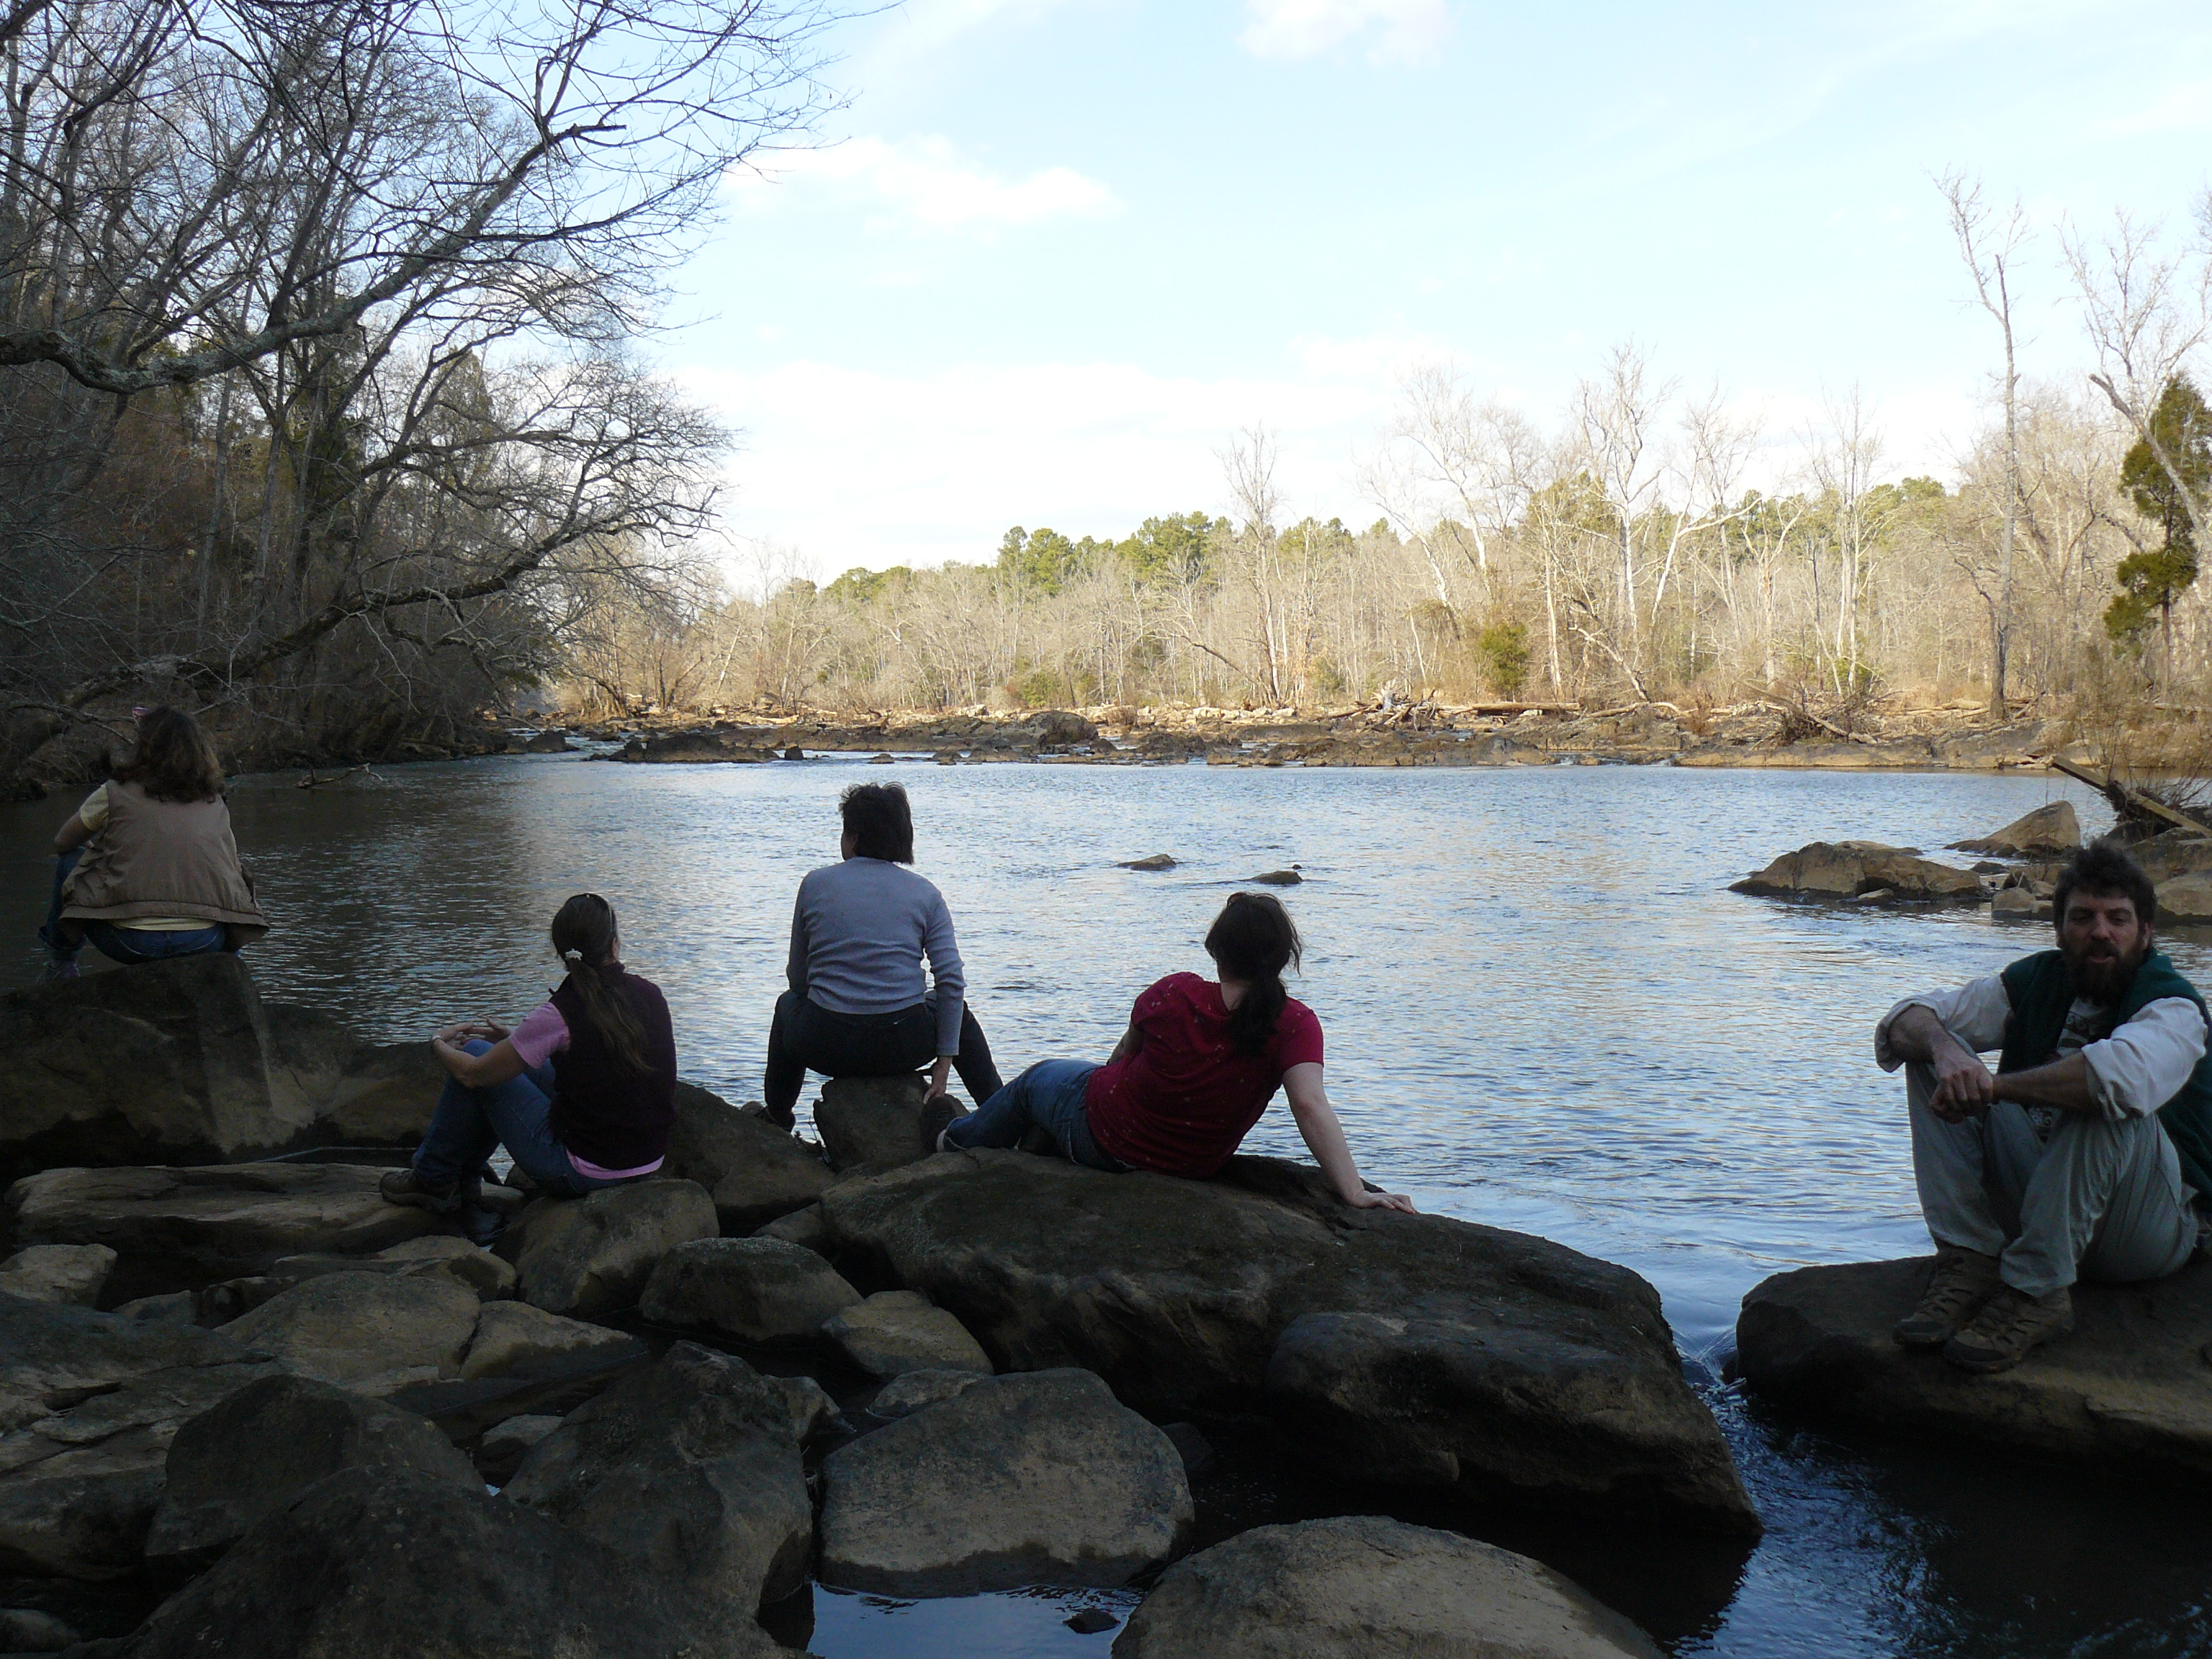 haw river Get directions, reviews and information for the lamb's chapel in haw river, nc.